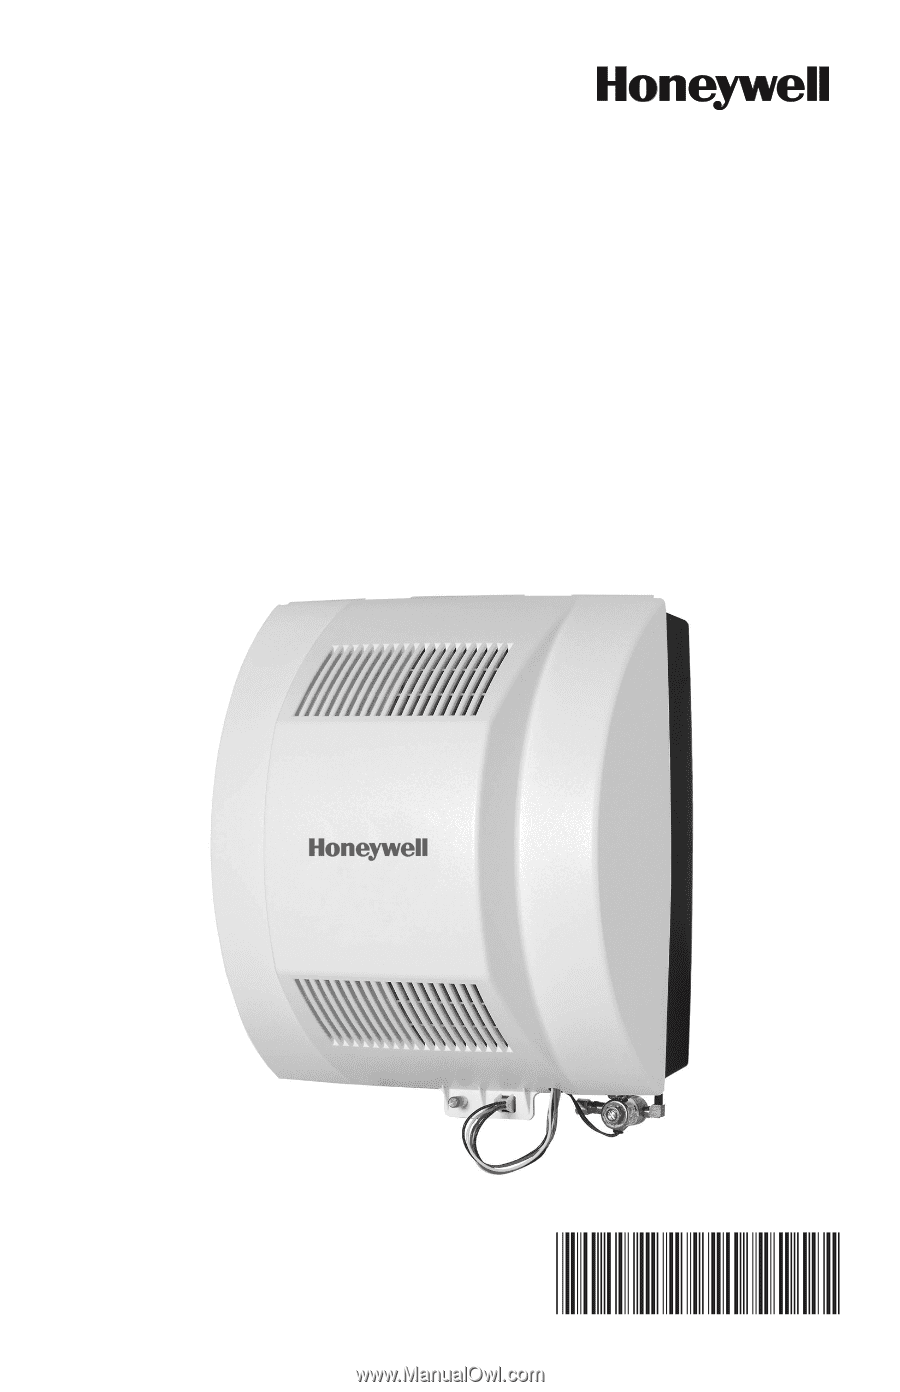 Diagram I Need Help Wiring An He220 Whole Home Humidifier